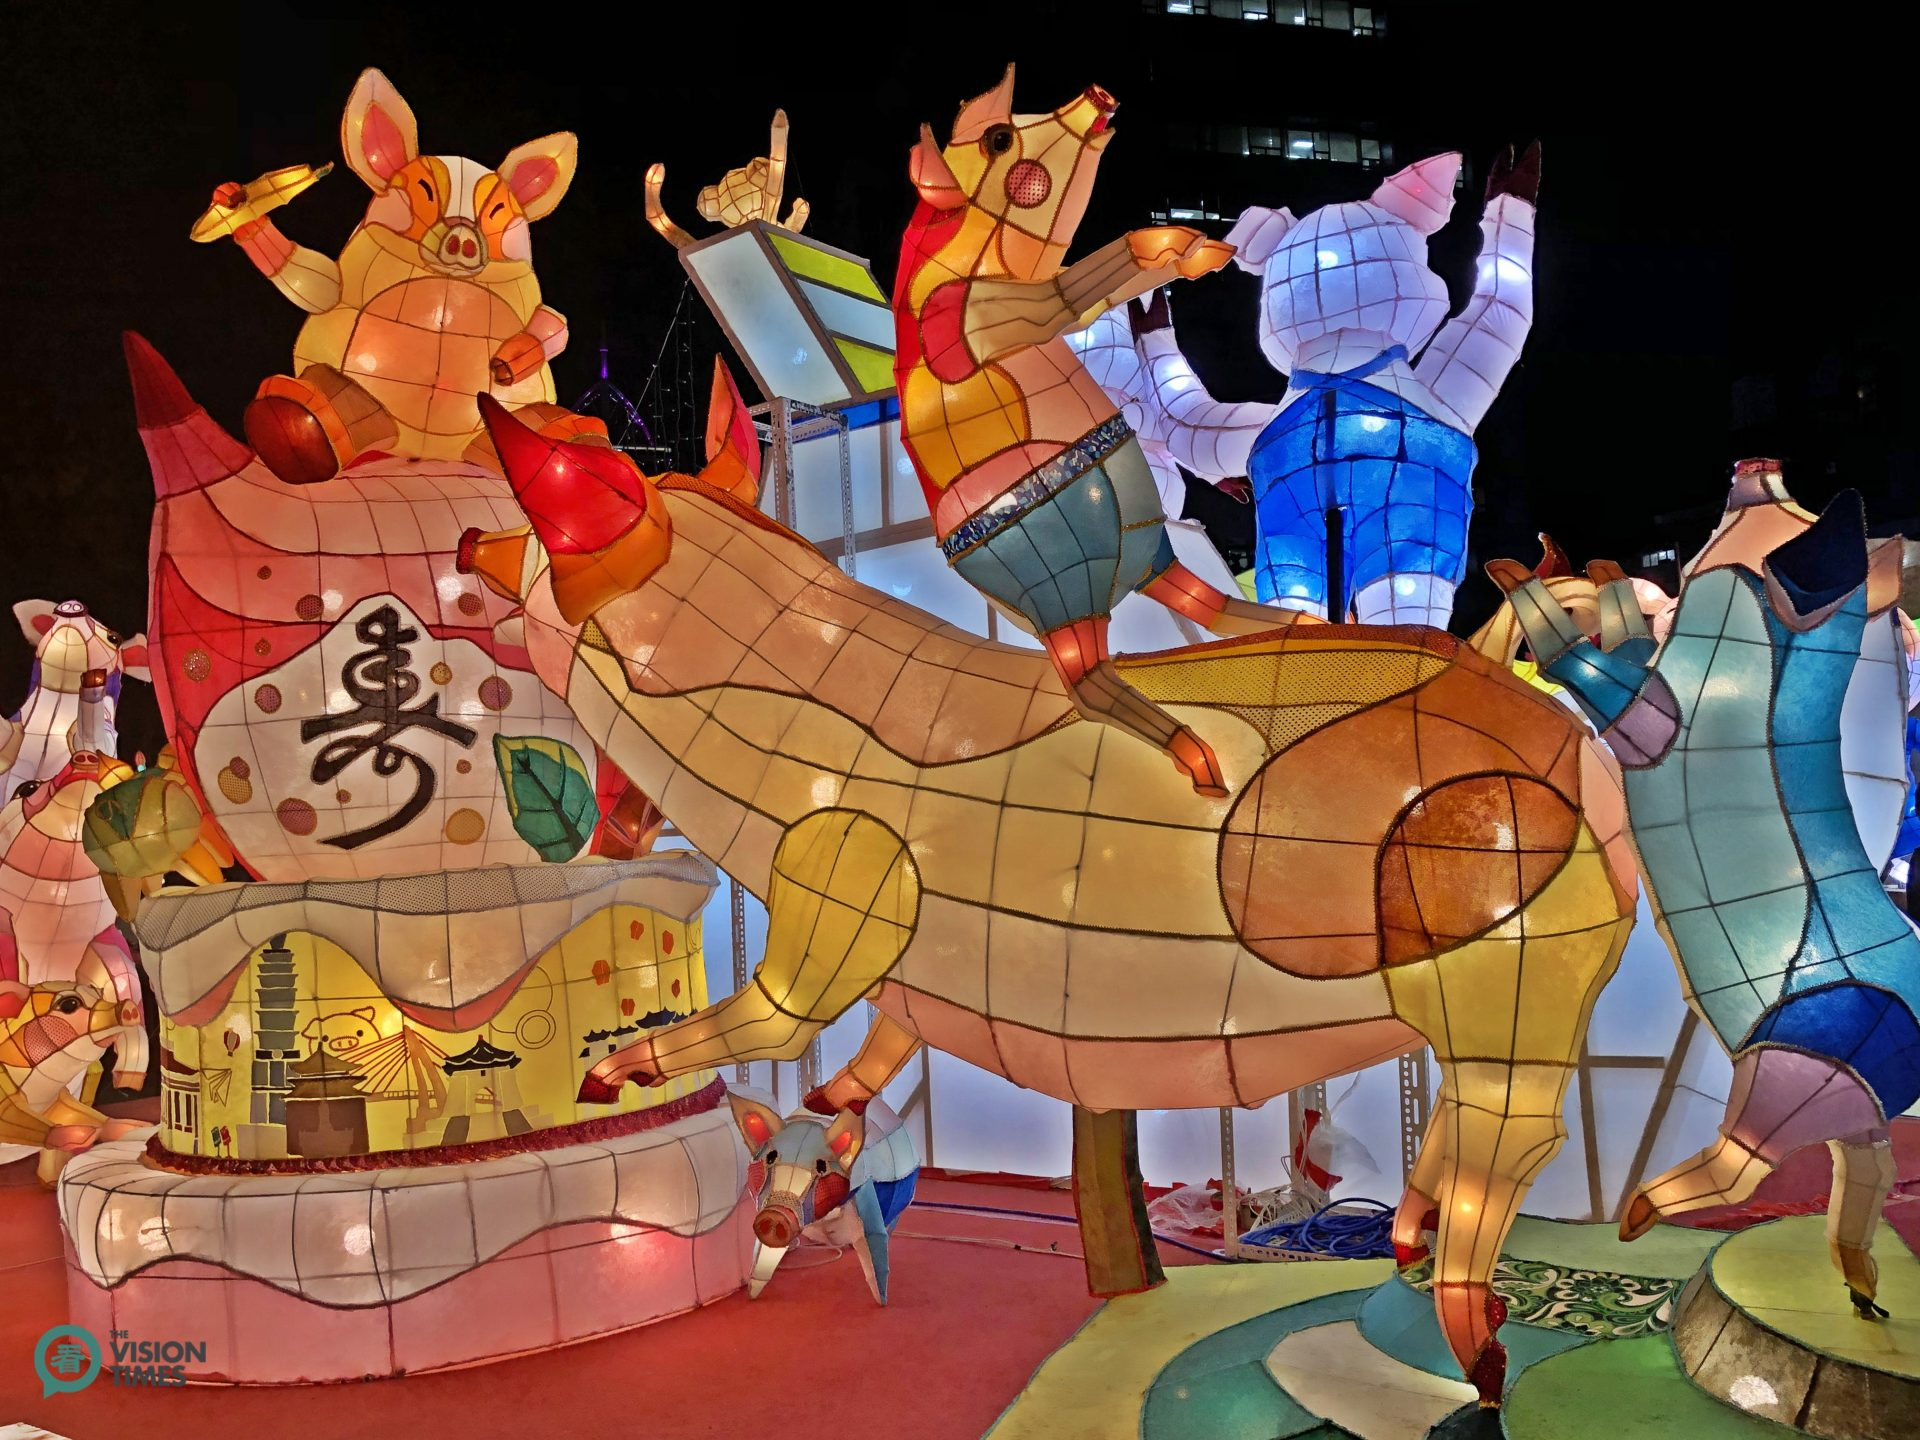 Many lanterns featured pigs as 2019 is the Year of the Pig according to the lunar calendar. (Image: Billy Shyu / Vision Times)